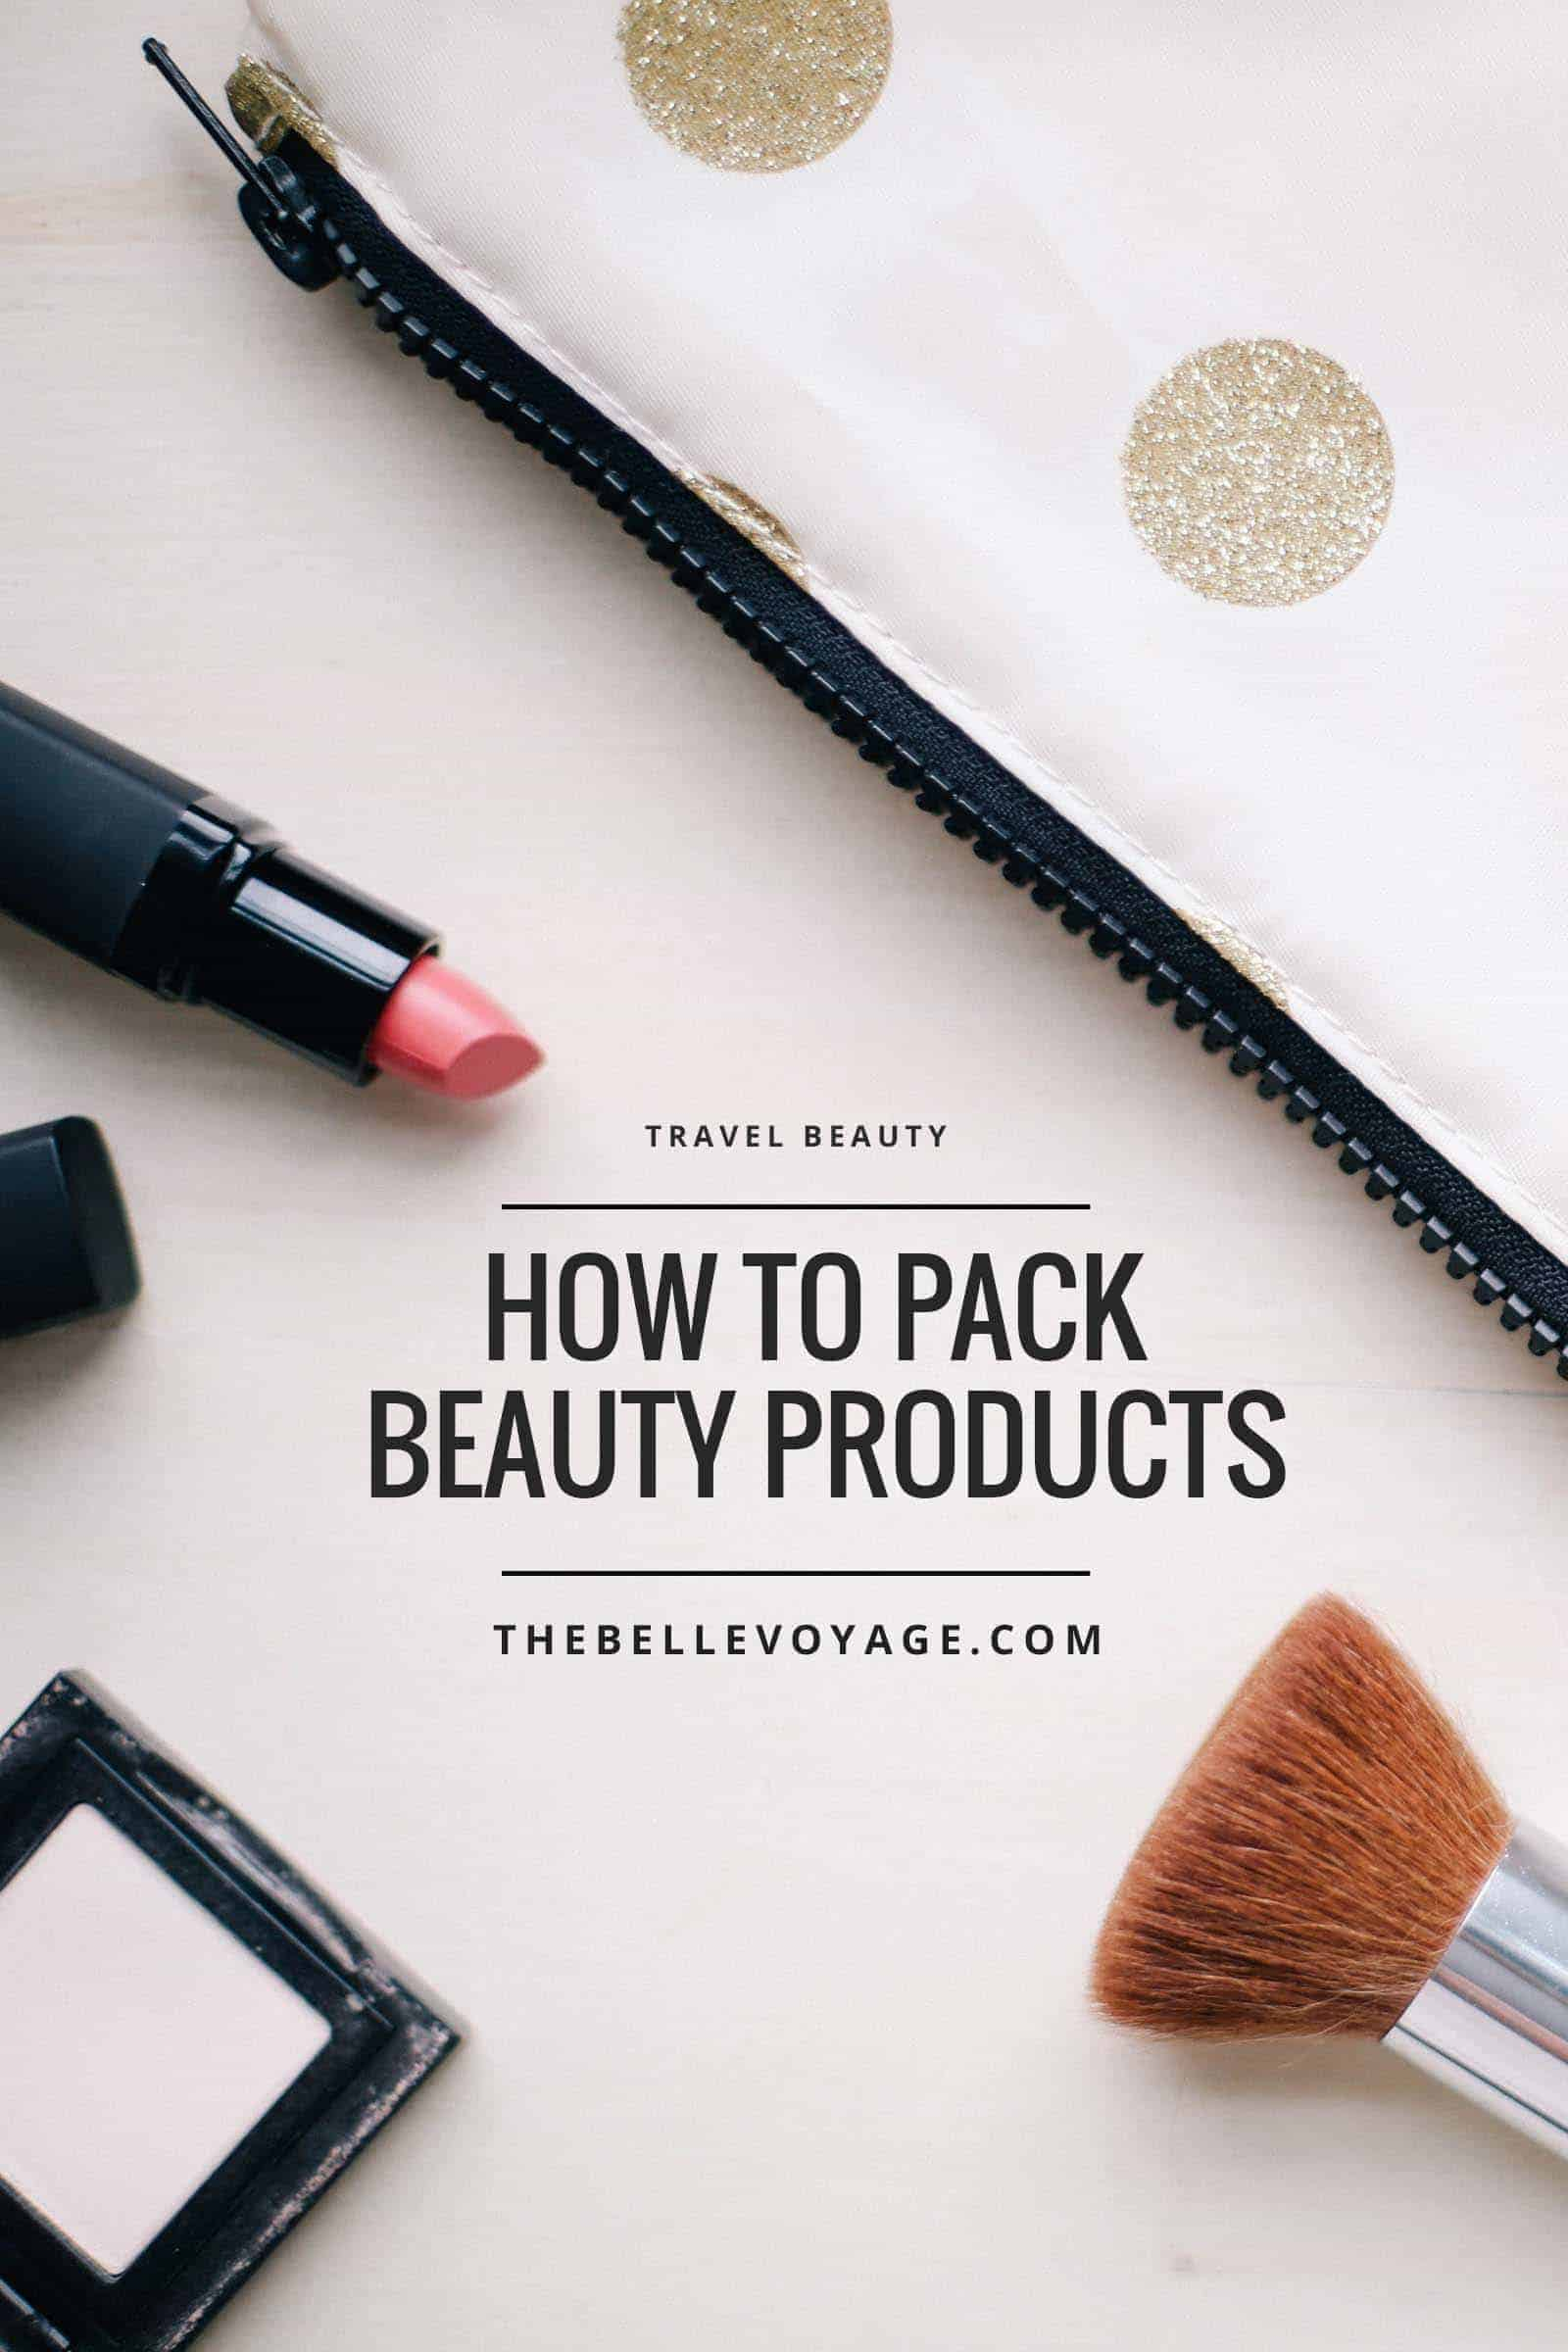 packing toiletries, travel beauty essentials, travel beauty tips, travel makeup kit, travel makeup bag